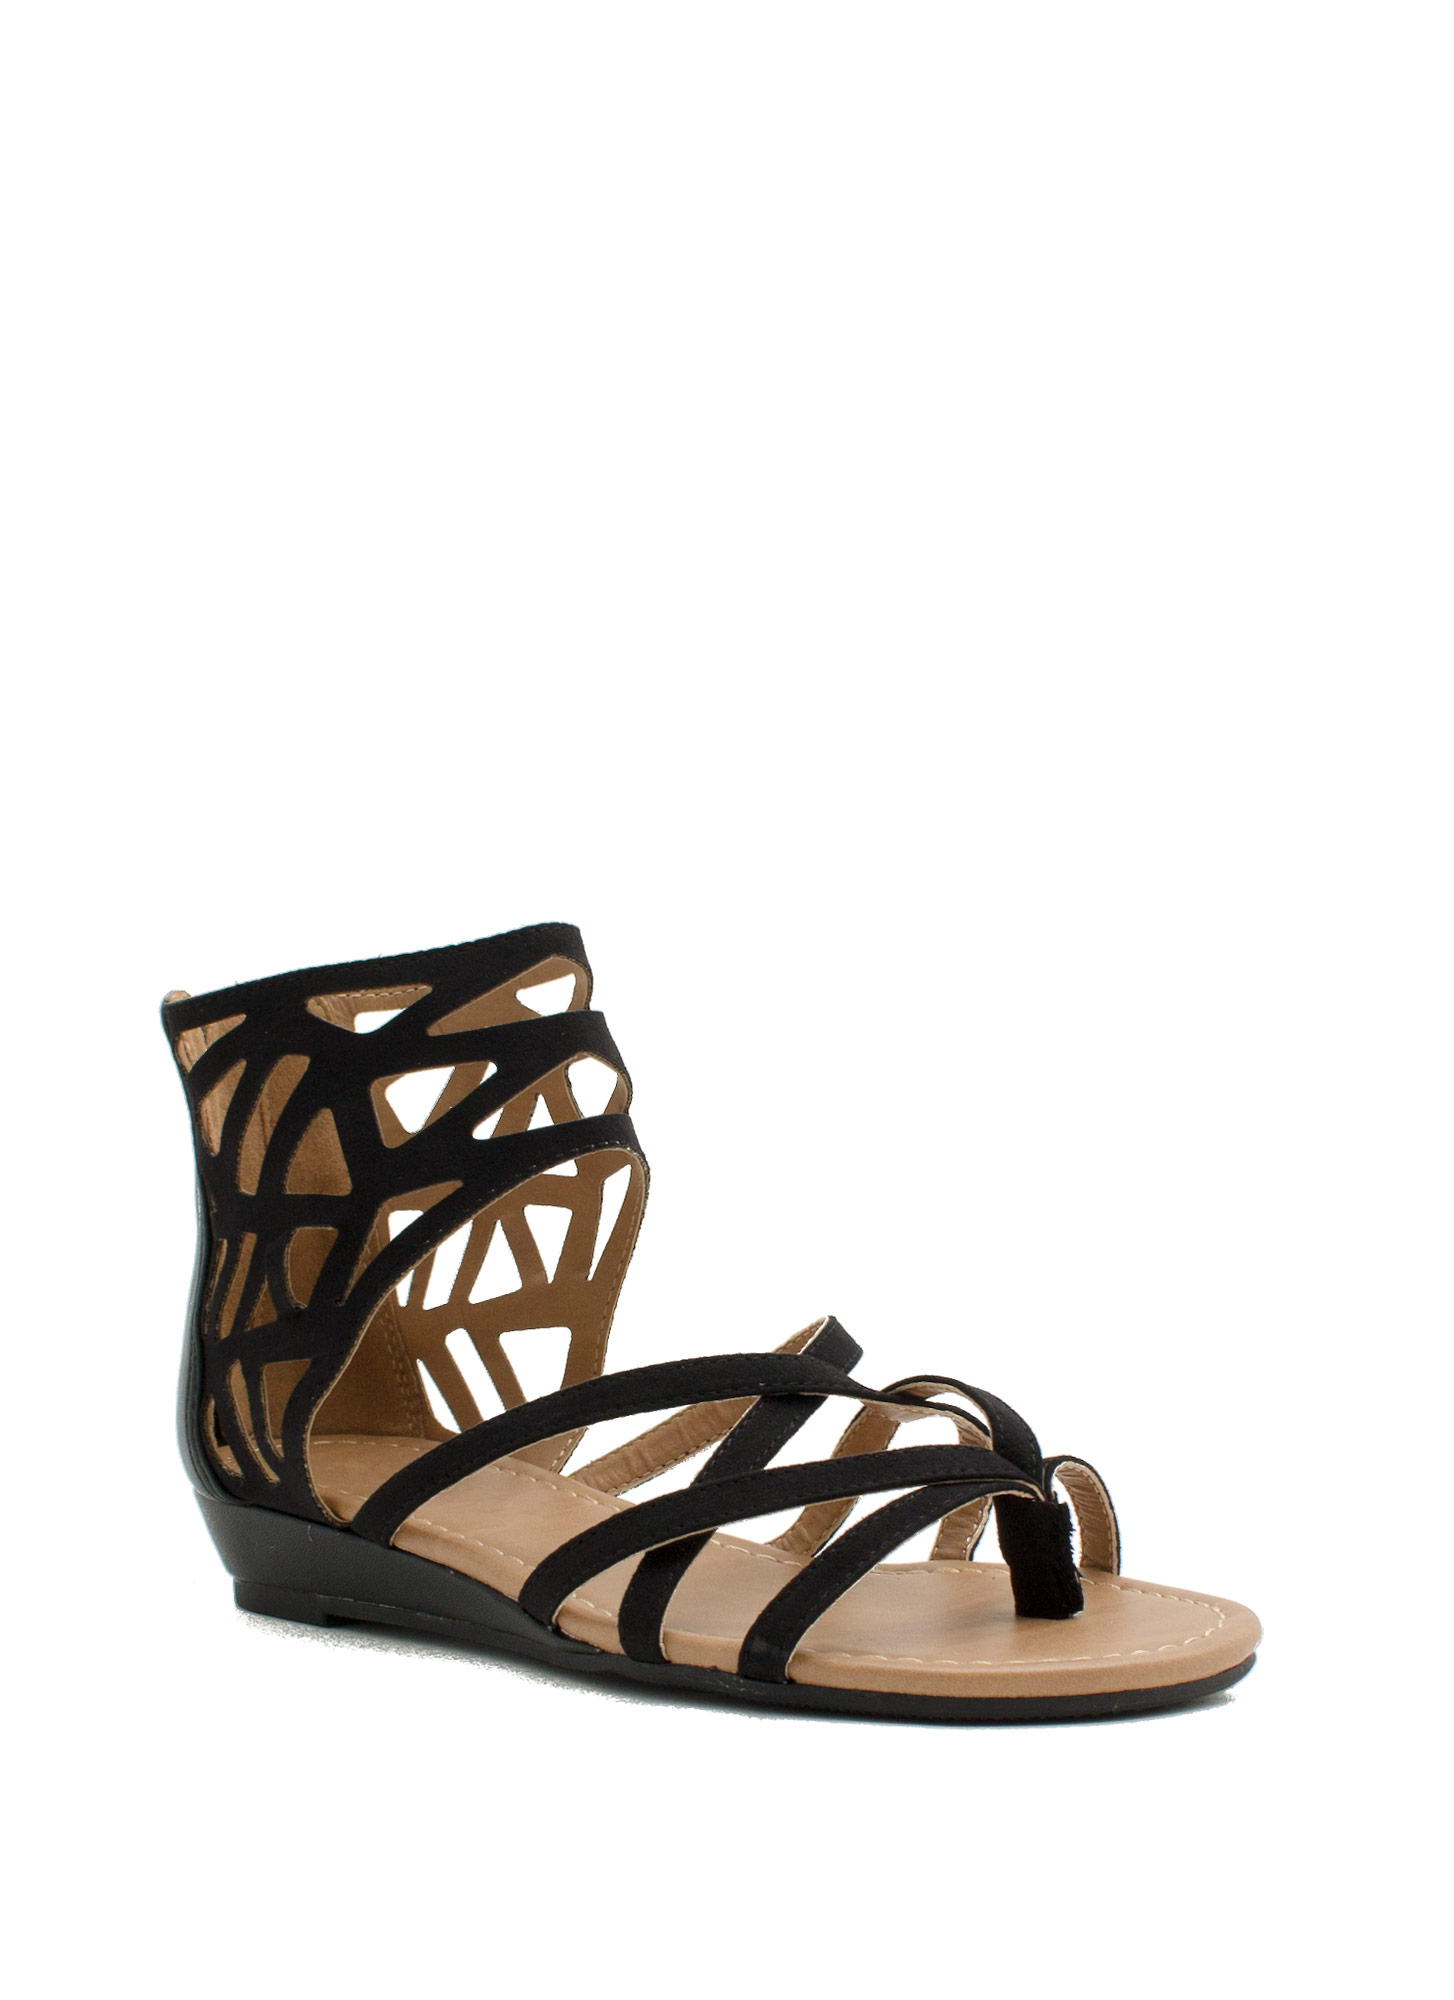 Too Haute Faux Leather Cut-Out Sandals BLACK